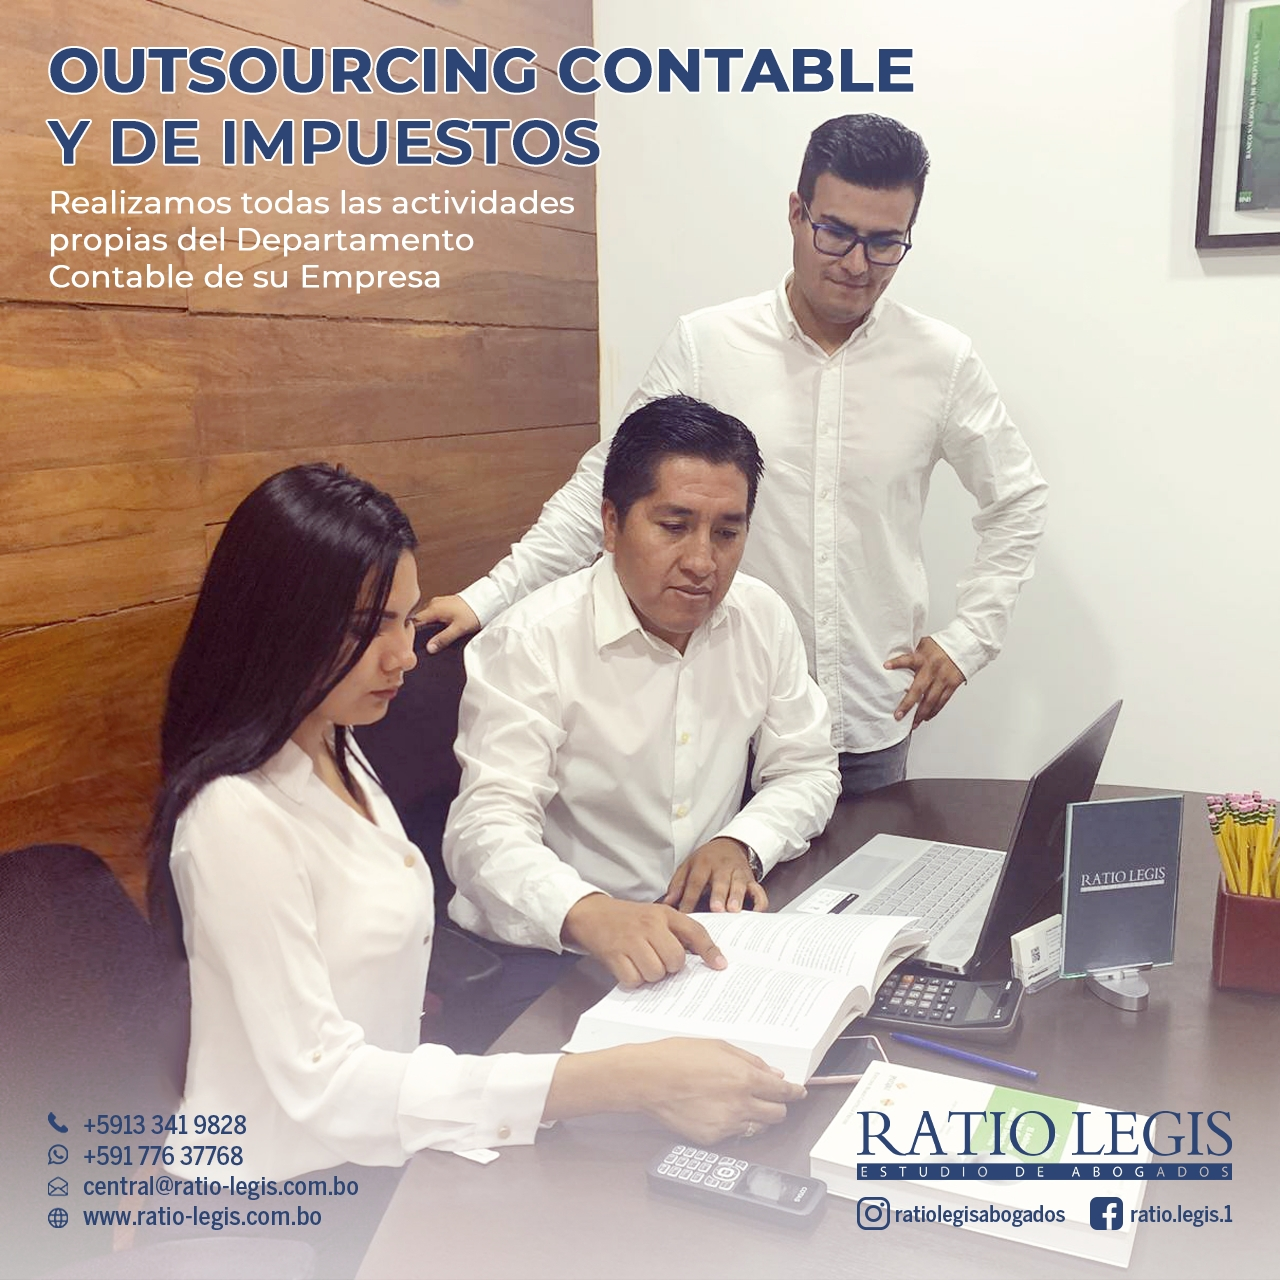 (Español) Outsourcing Contable y de Impuestos